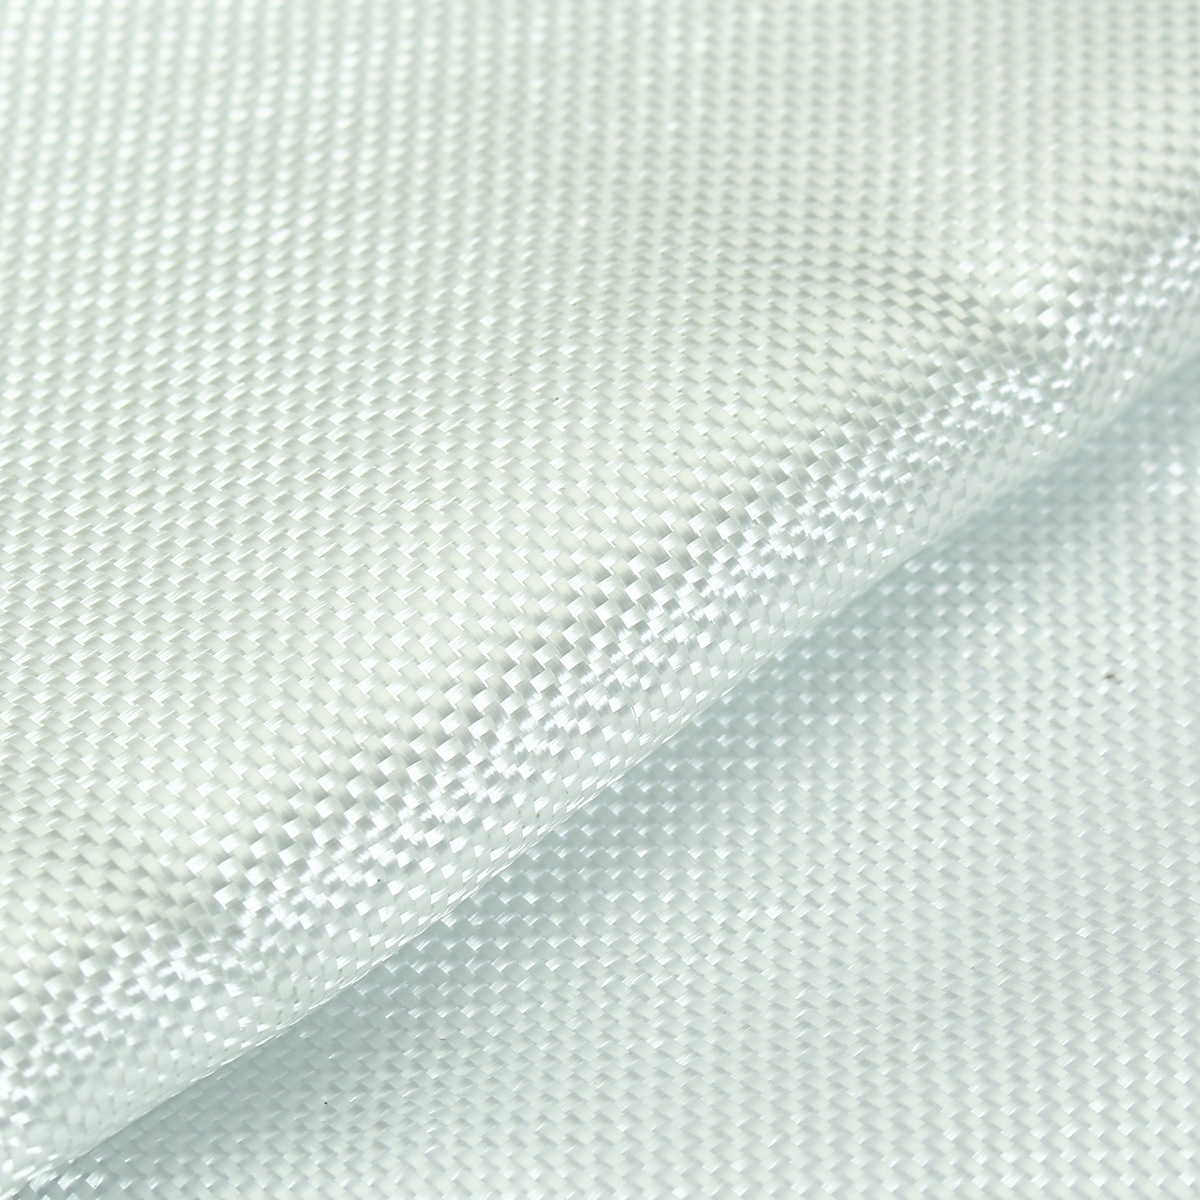 10x1m Fiber Glass Cloth Fabric Plain Woven Roving Cloth For Model Airplane